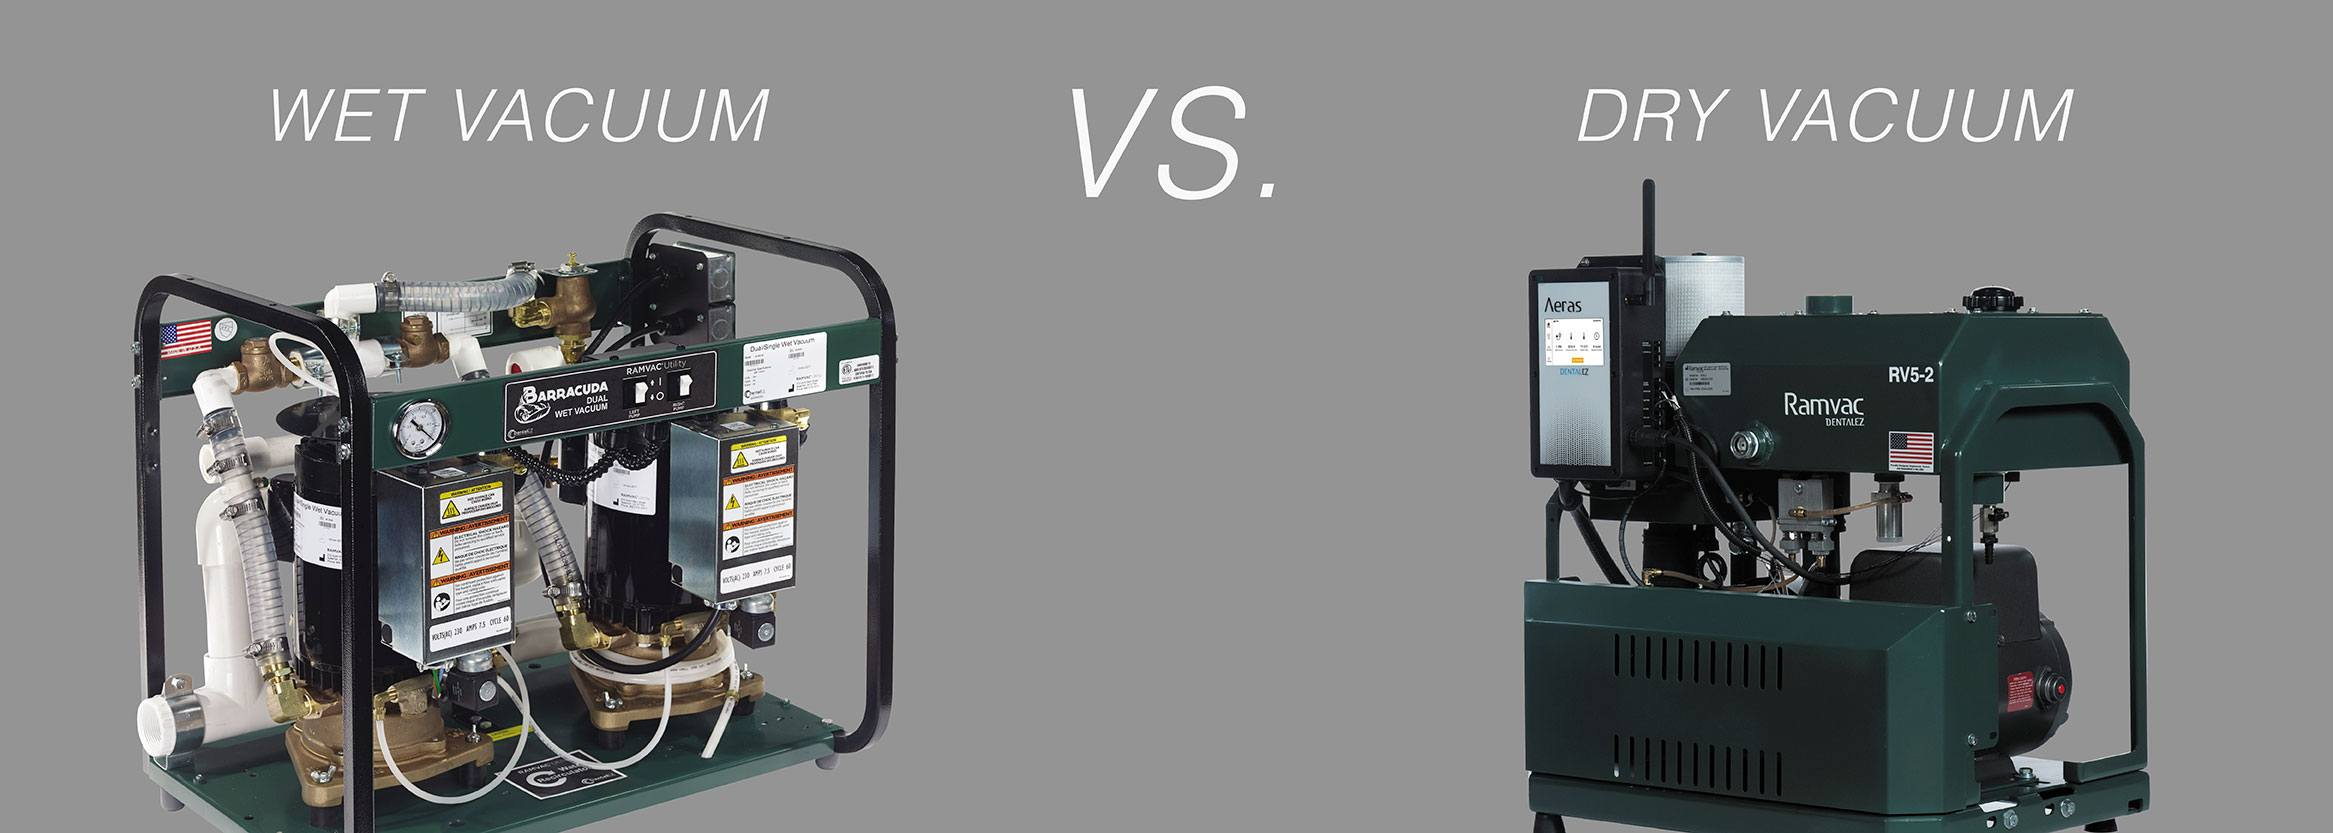 The Guide to Dental Vacuum Pumps: Wet vs Dry